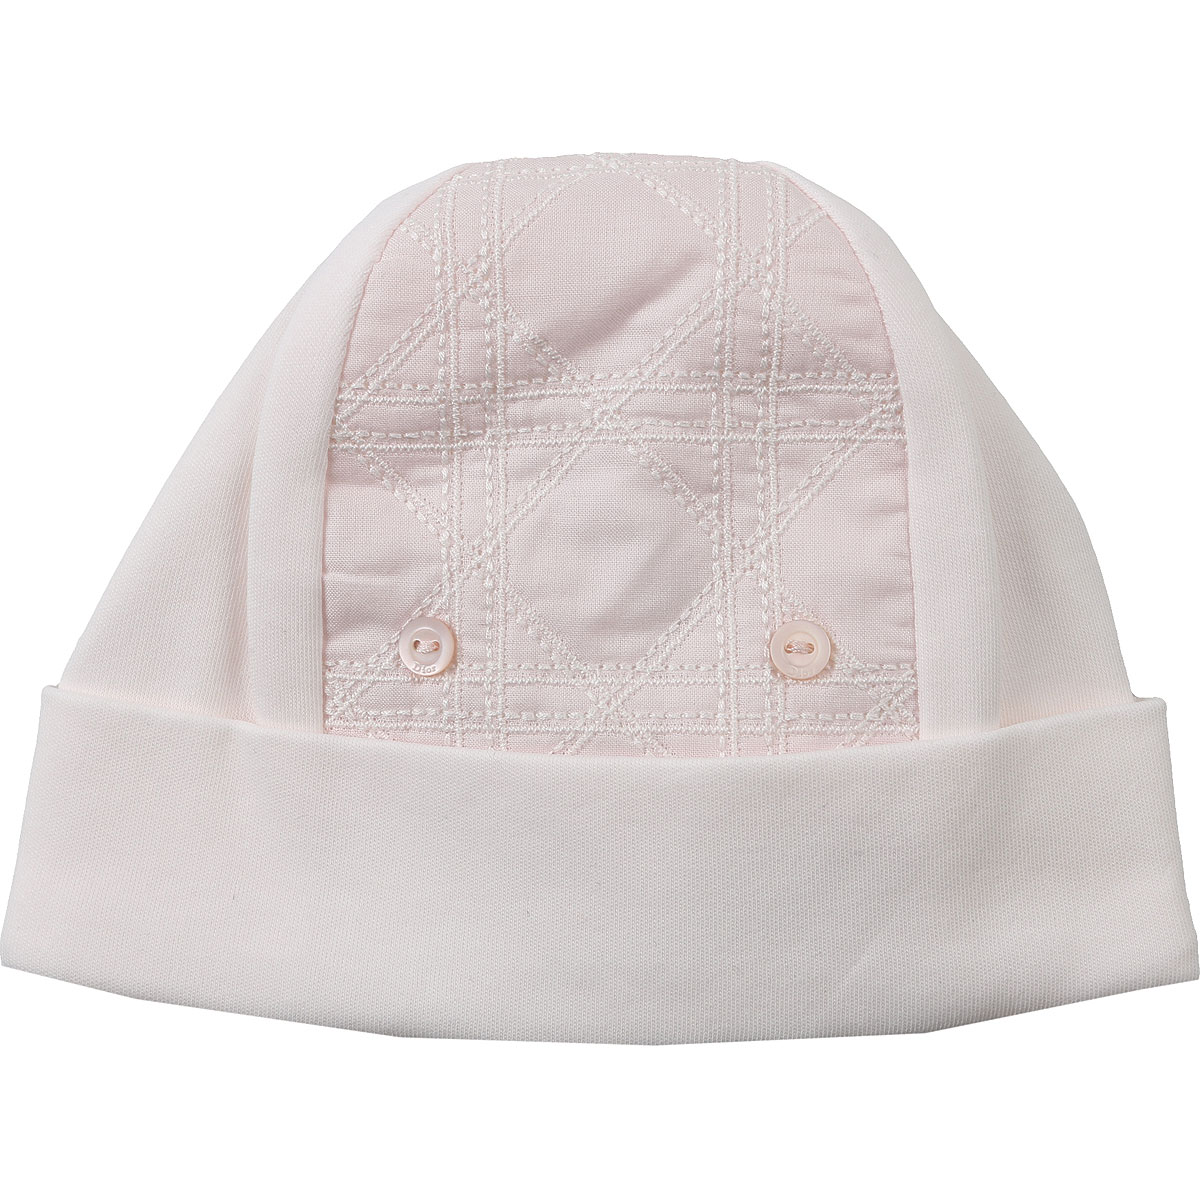 Baby Dior Baby Hats for Girls, Pink, Cotton, 2019